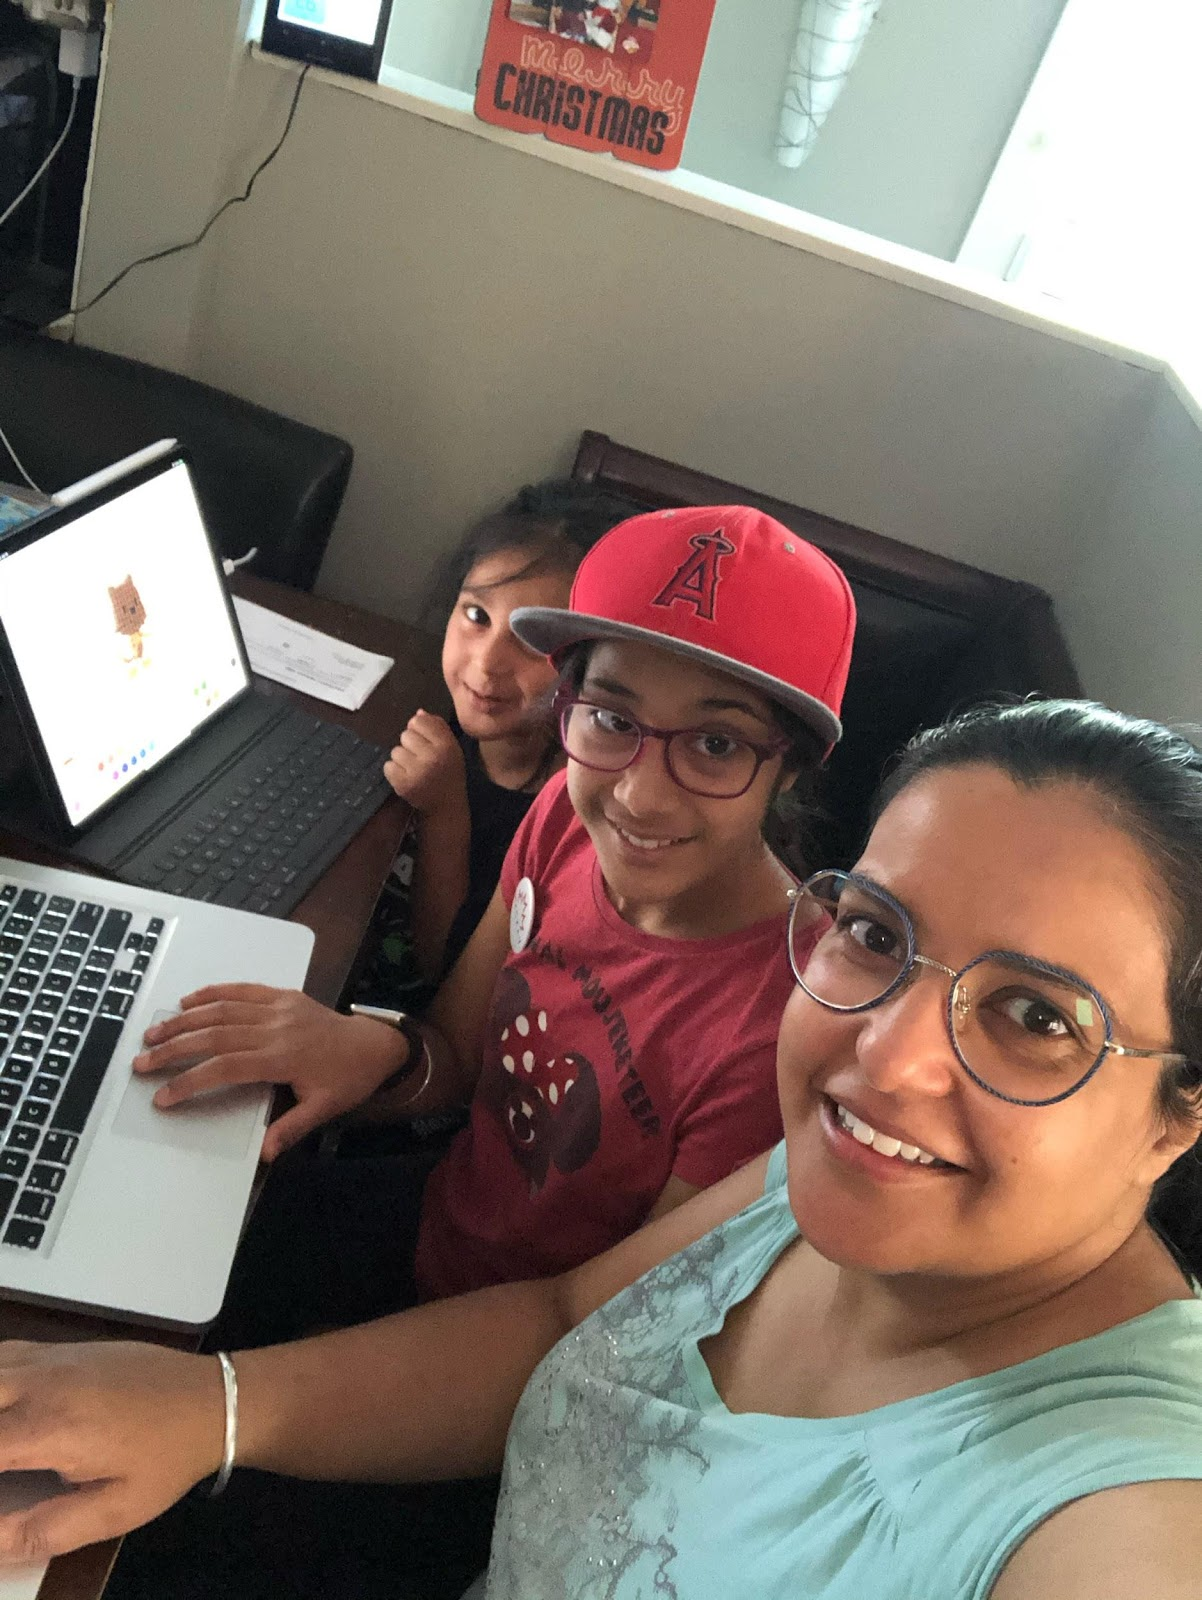 Mom and two her daughters sitting in front of their laptops and smiling to the camera